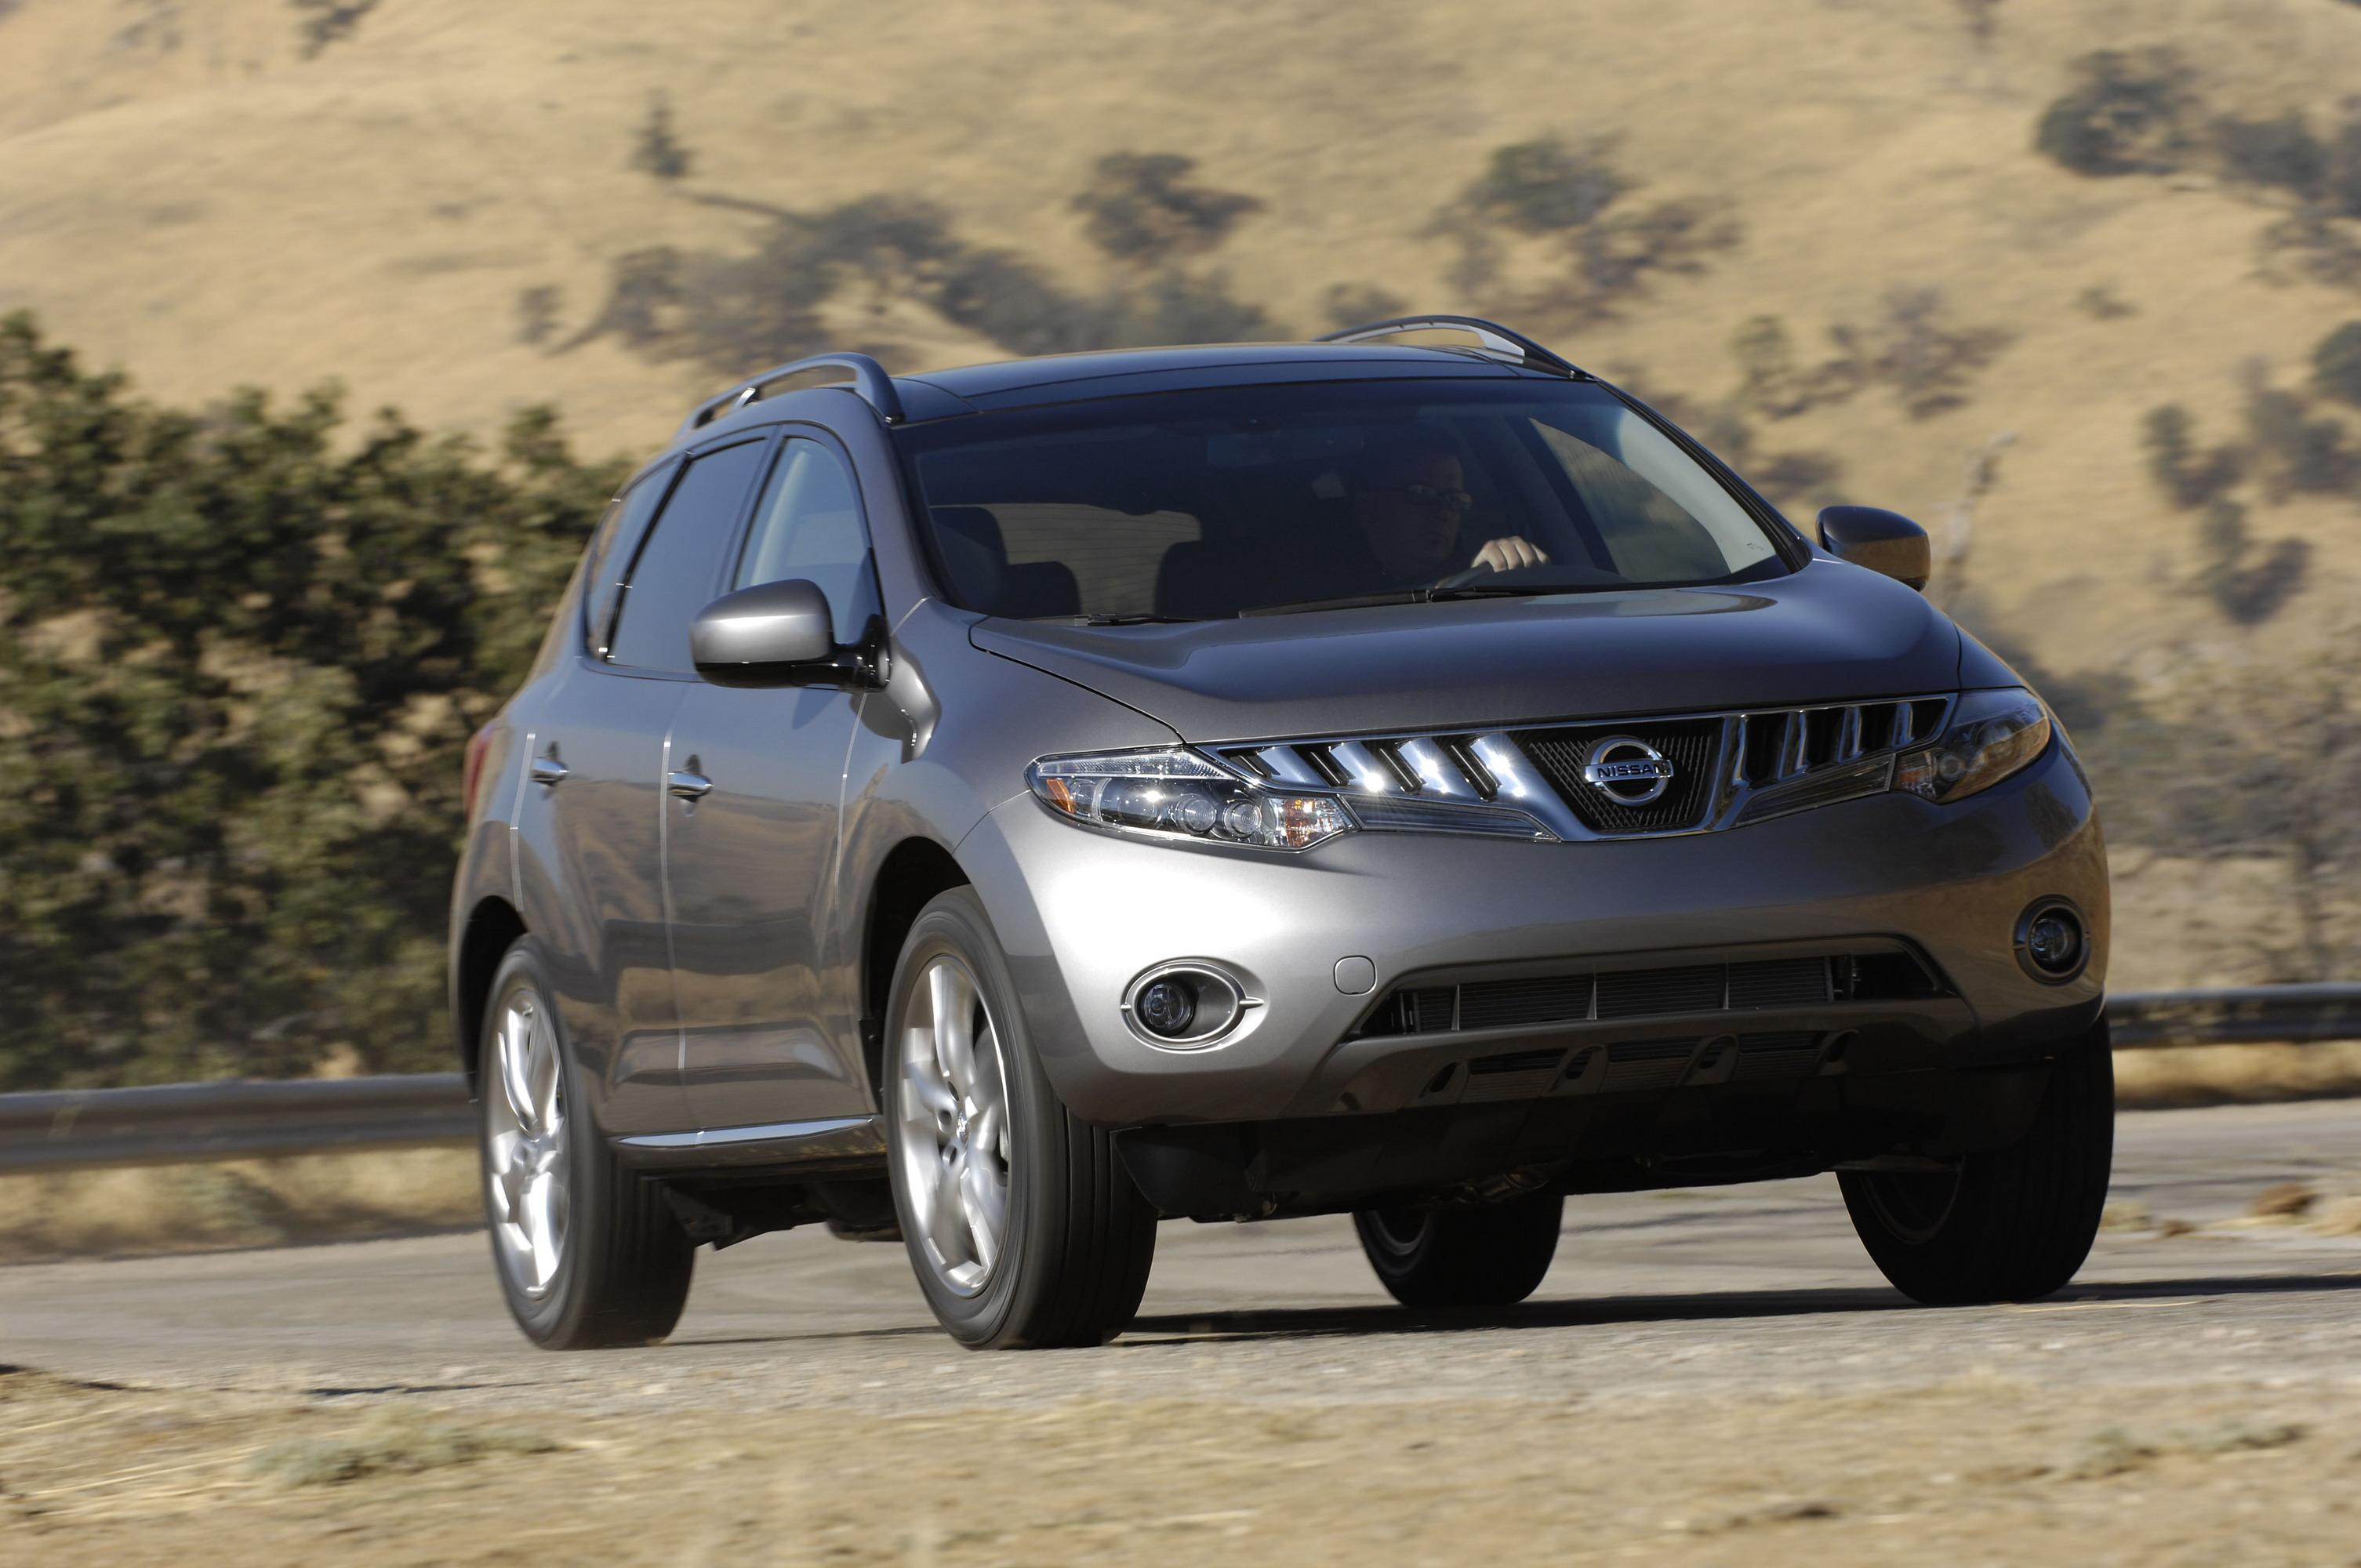 negotiable pin sale cloudhax nissan murano pinterest unreg listing car by price for